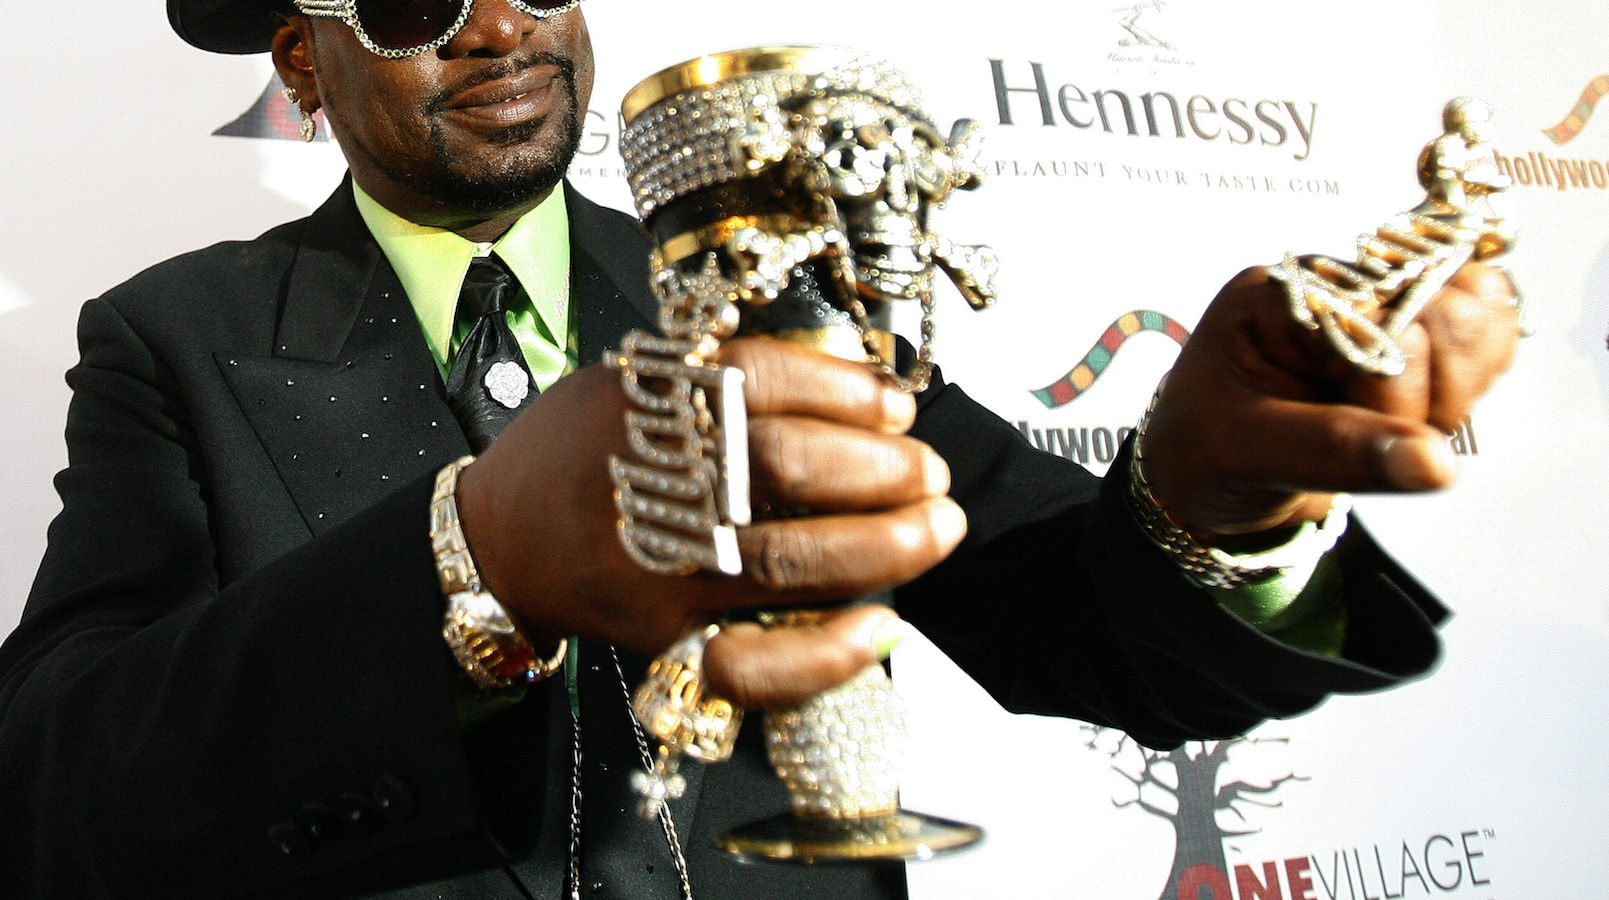 """Hip-hop artist Don """"Magic"""" Juan attends the premiere of """"Two Turntables and a Microphone"""" at the Writers Guild theatre in Los Angeles June 3, 2008. The premiere opens the annual Hollywood Black Film Festival (HBFF), a six-day celebration of black cinema.  REUTERS/Mario Anzuoni   (UNITED STATES) - RTX6HZ9"""